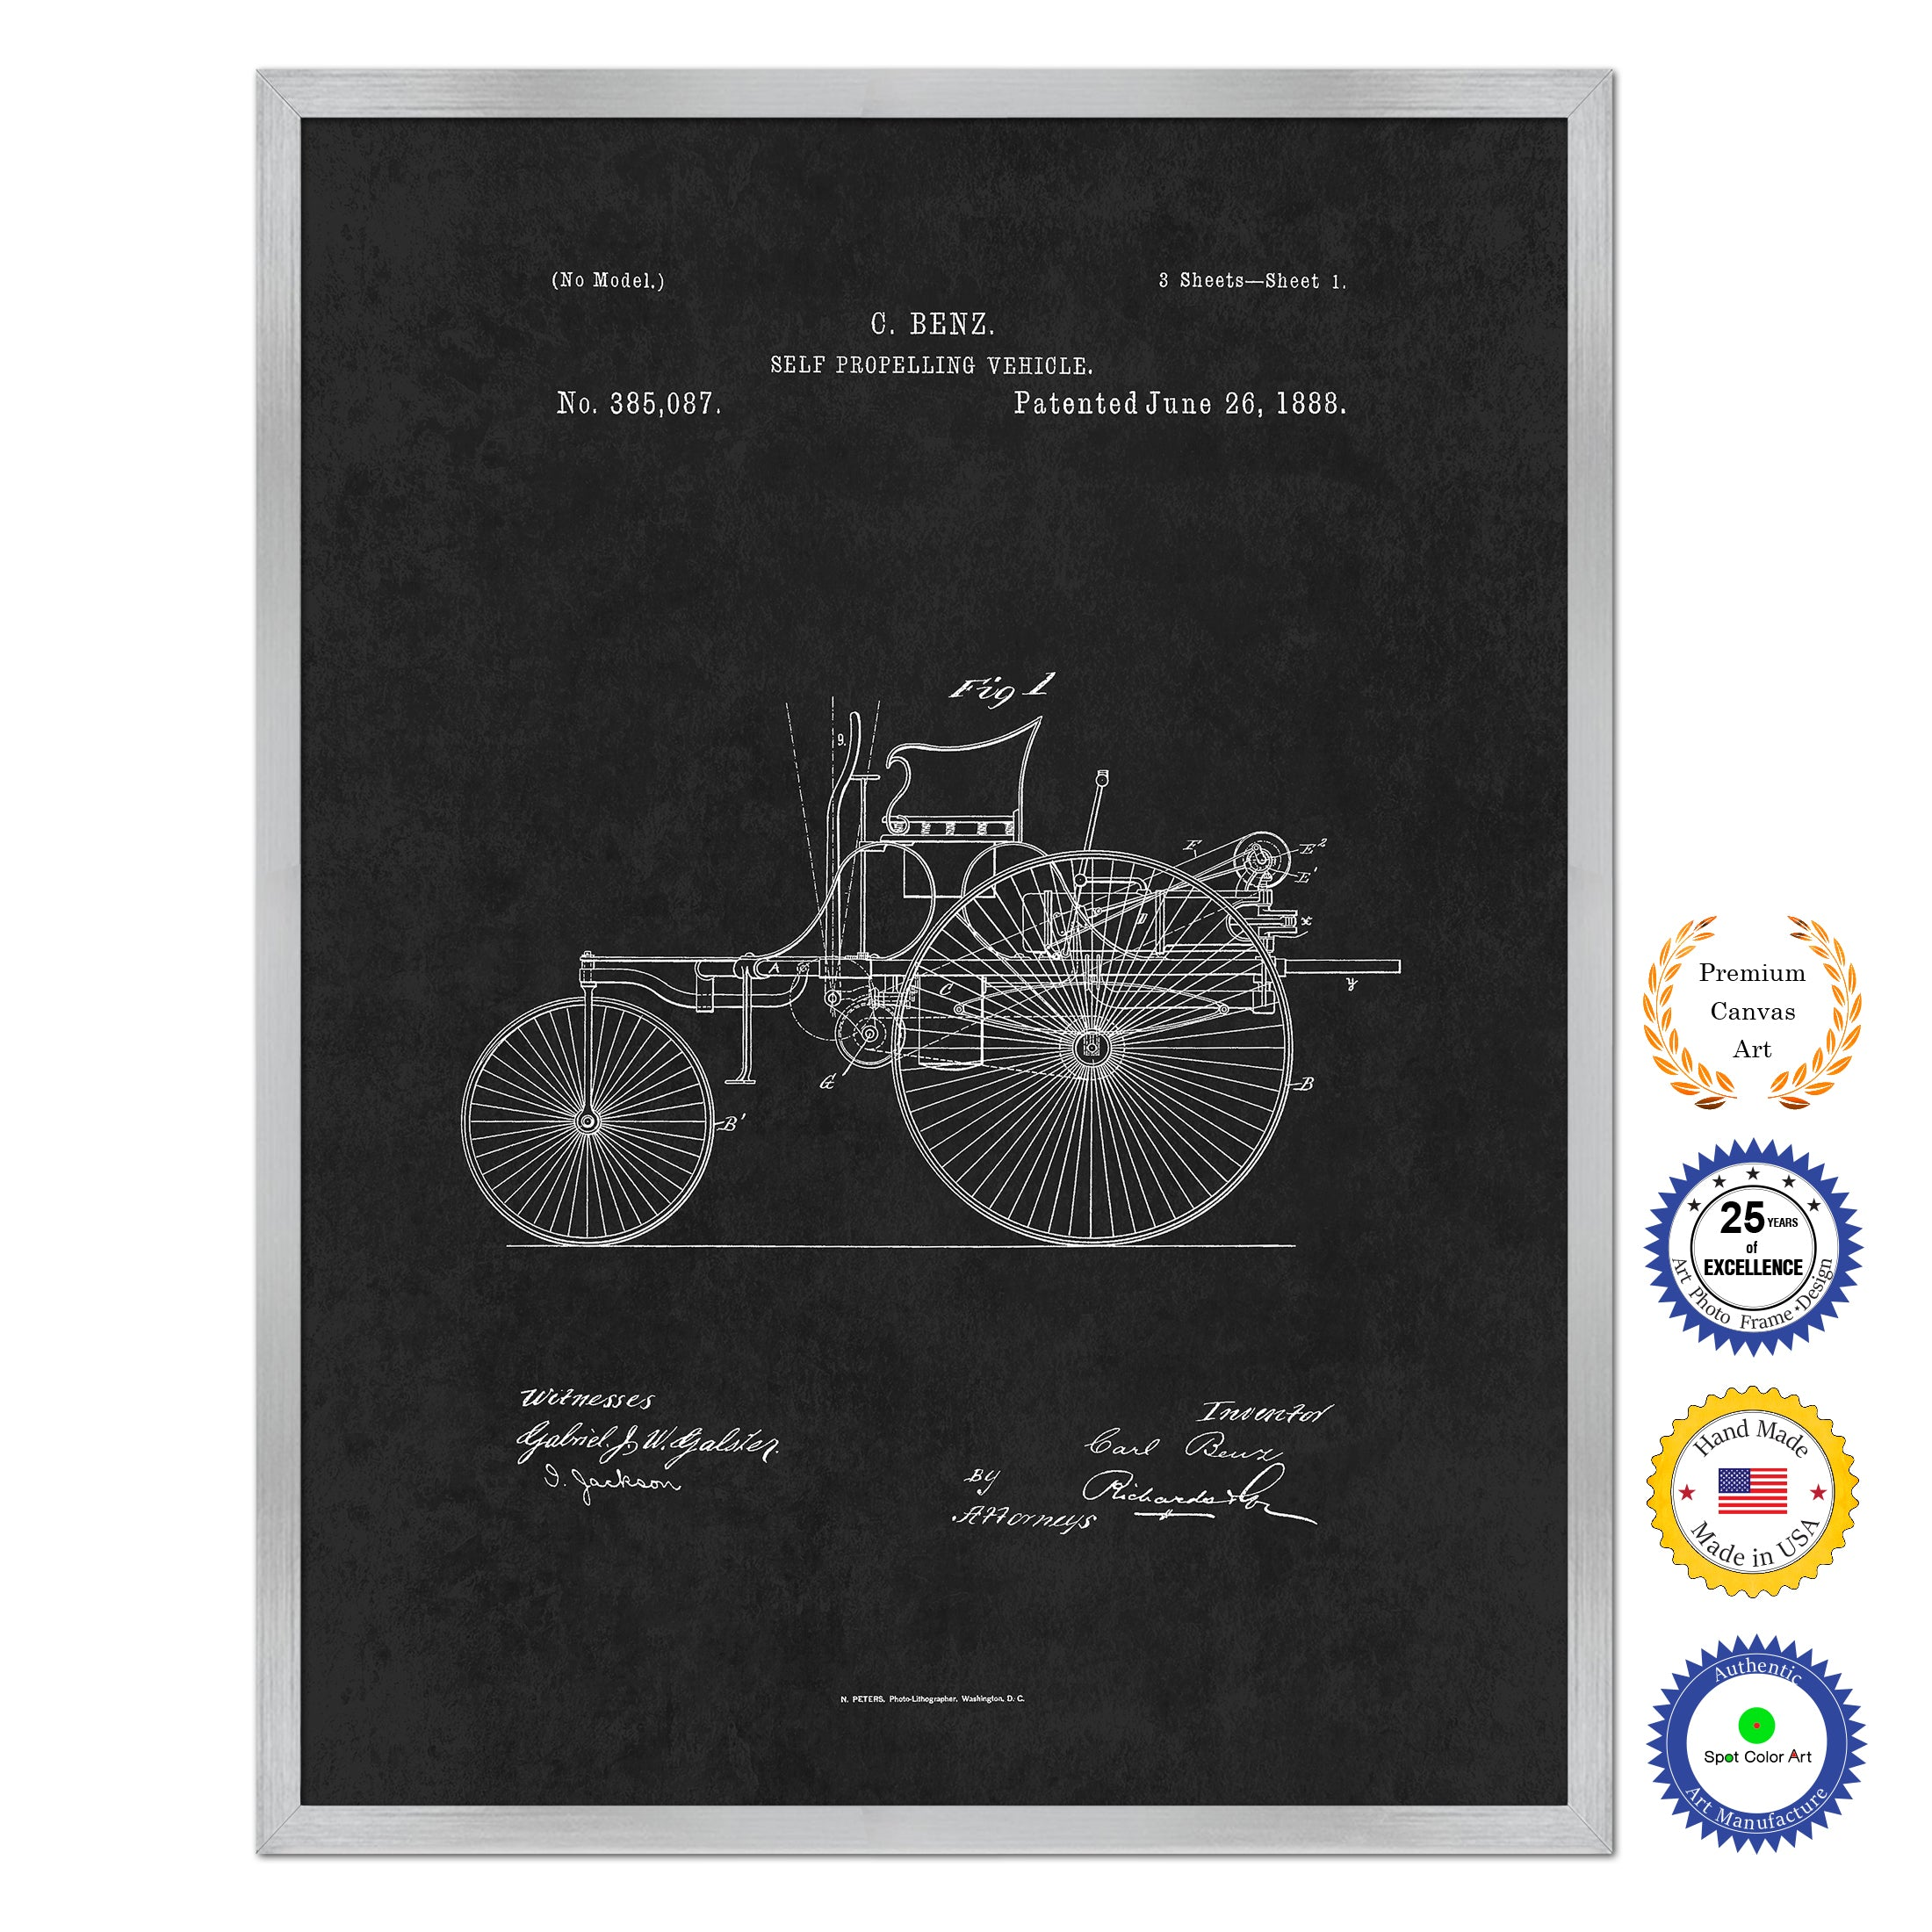 1888 Carl Benz Self Propelling Vehicle Antique Patent Artwork Silver Framed Canvas Home Office Decor Great Gift for Mechanic Car Collector